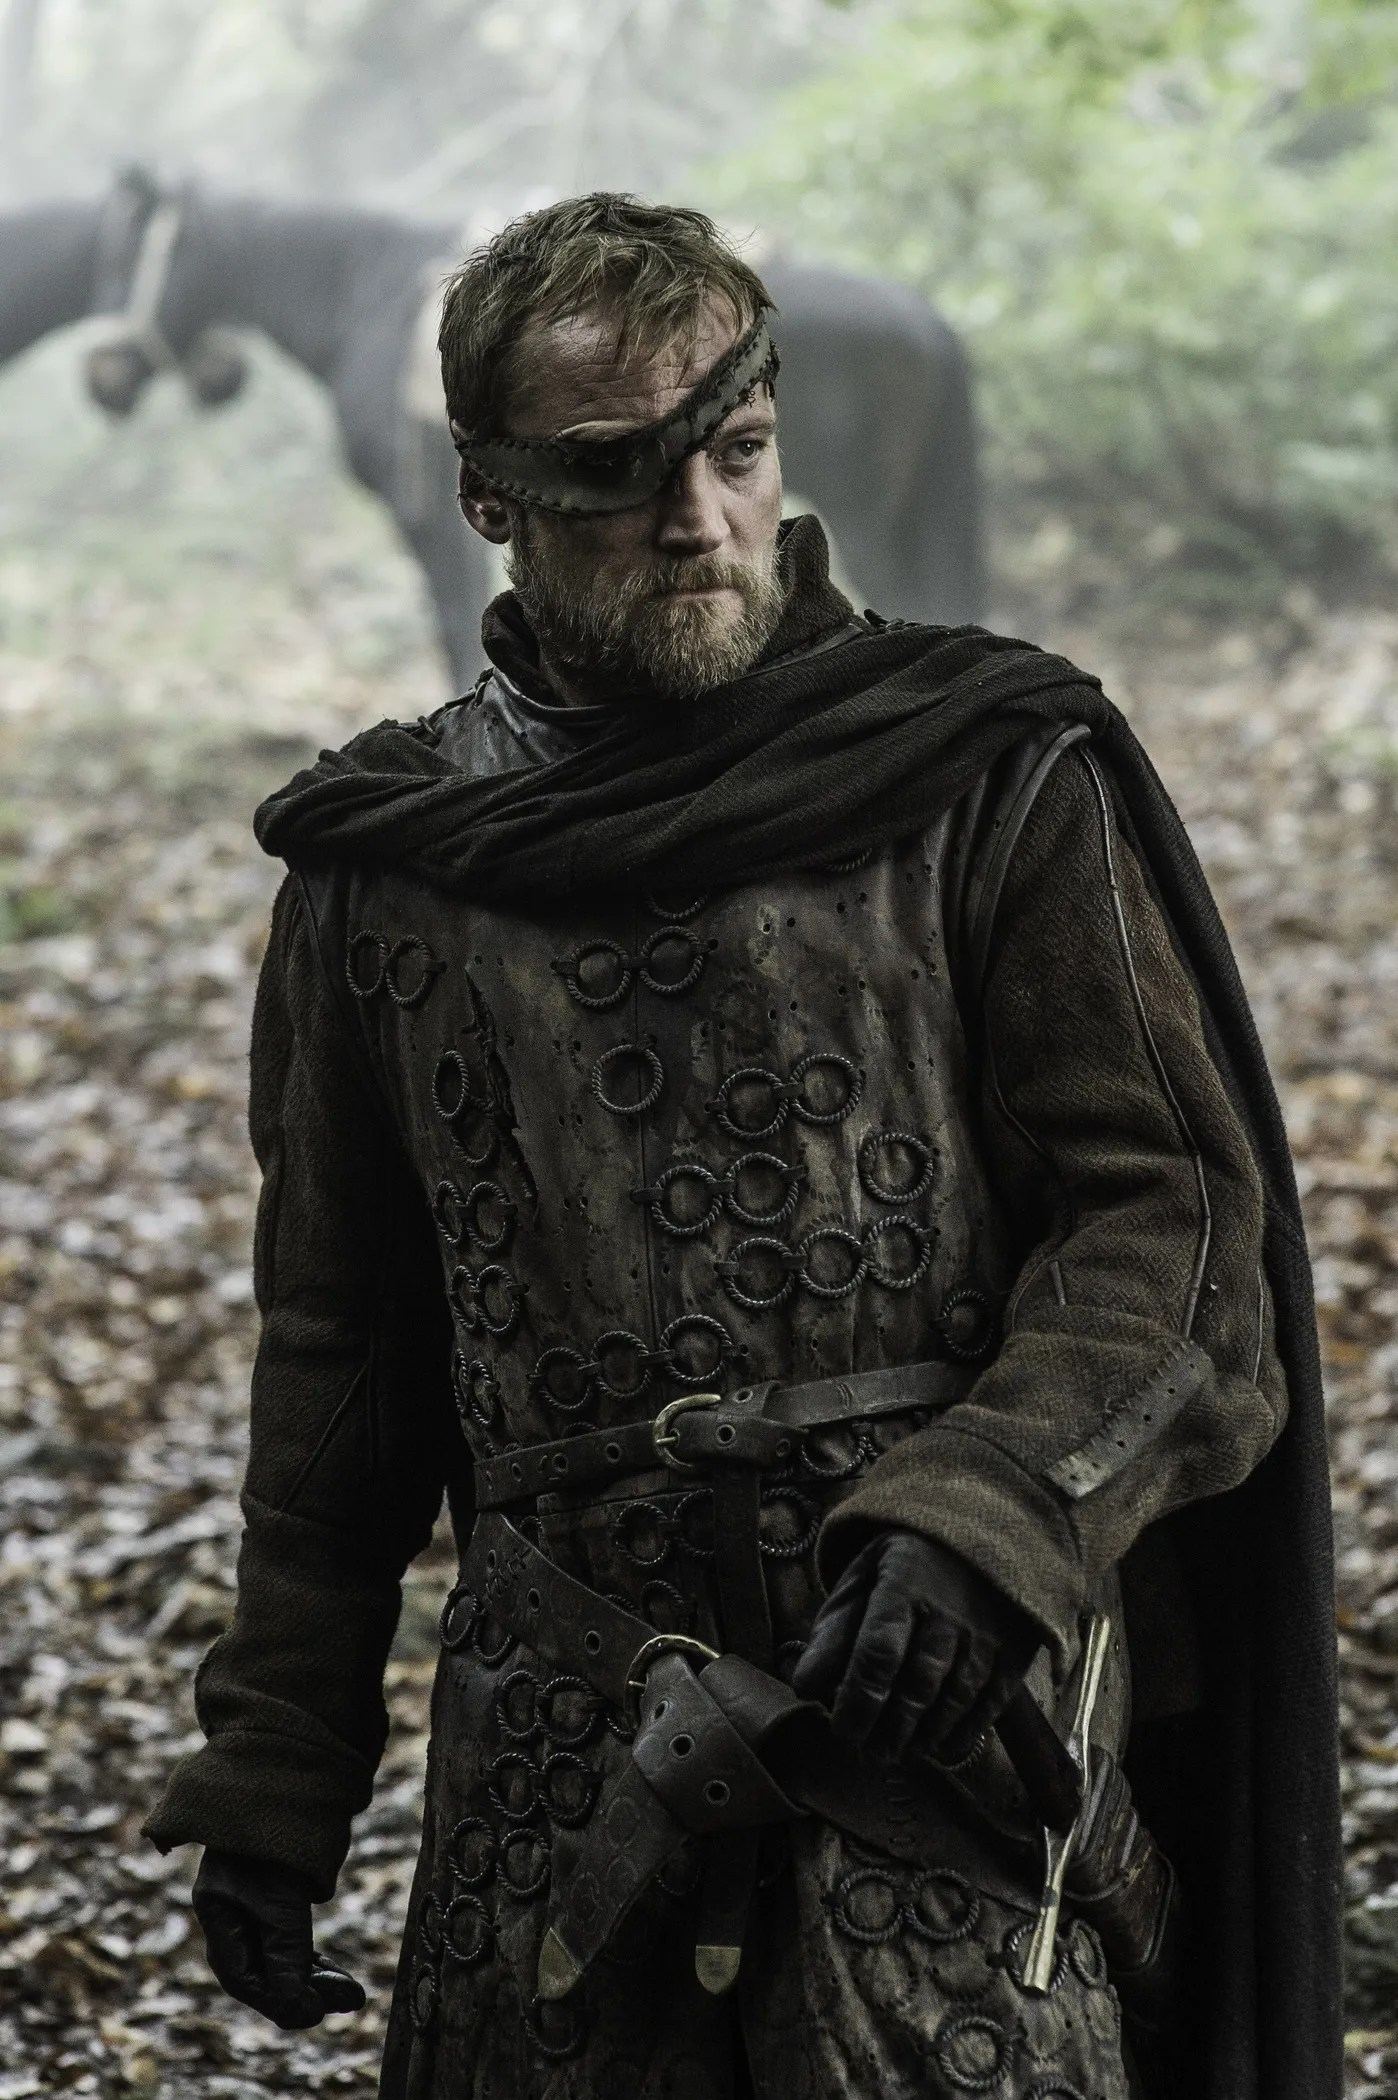 Game Of Thrones Brotherhood Without Banners Explained